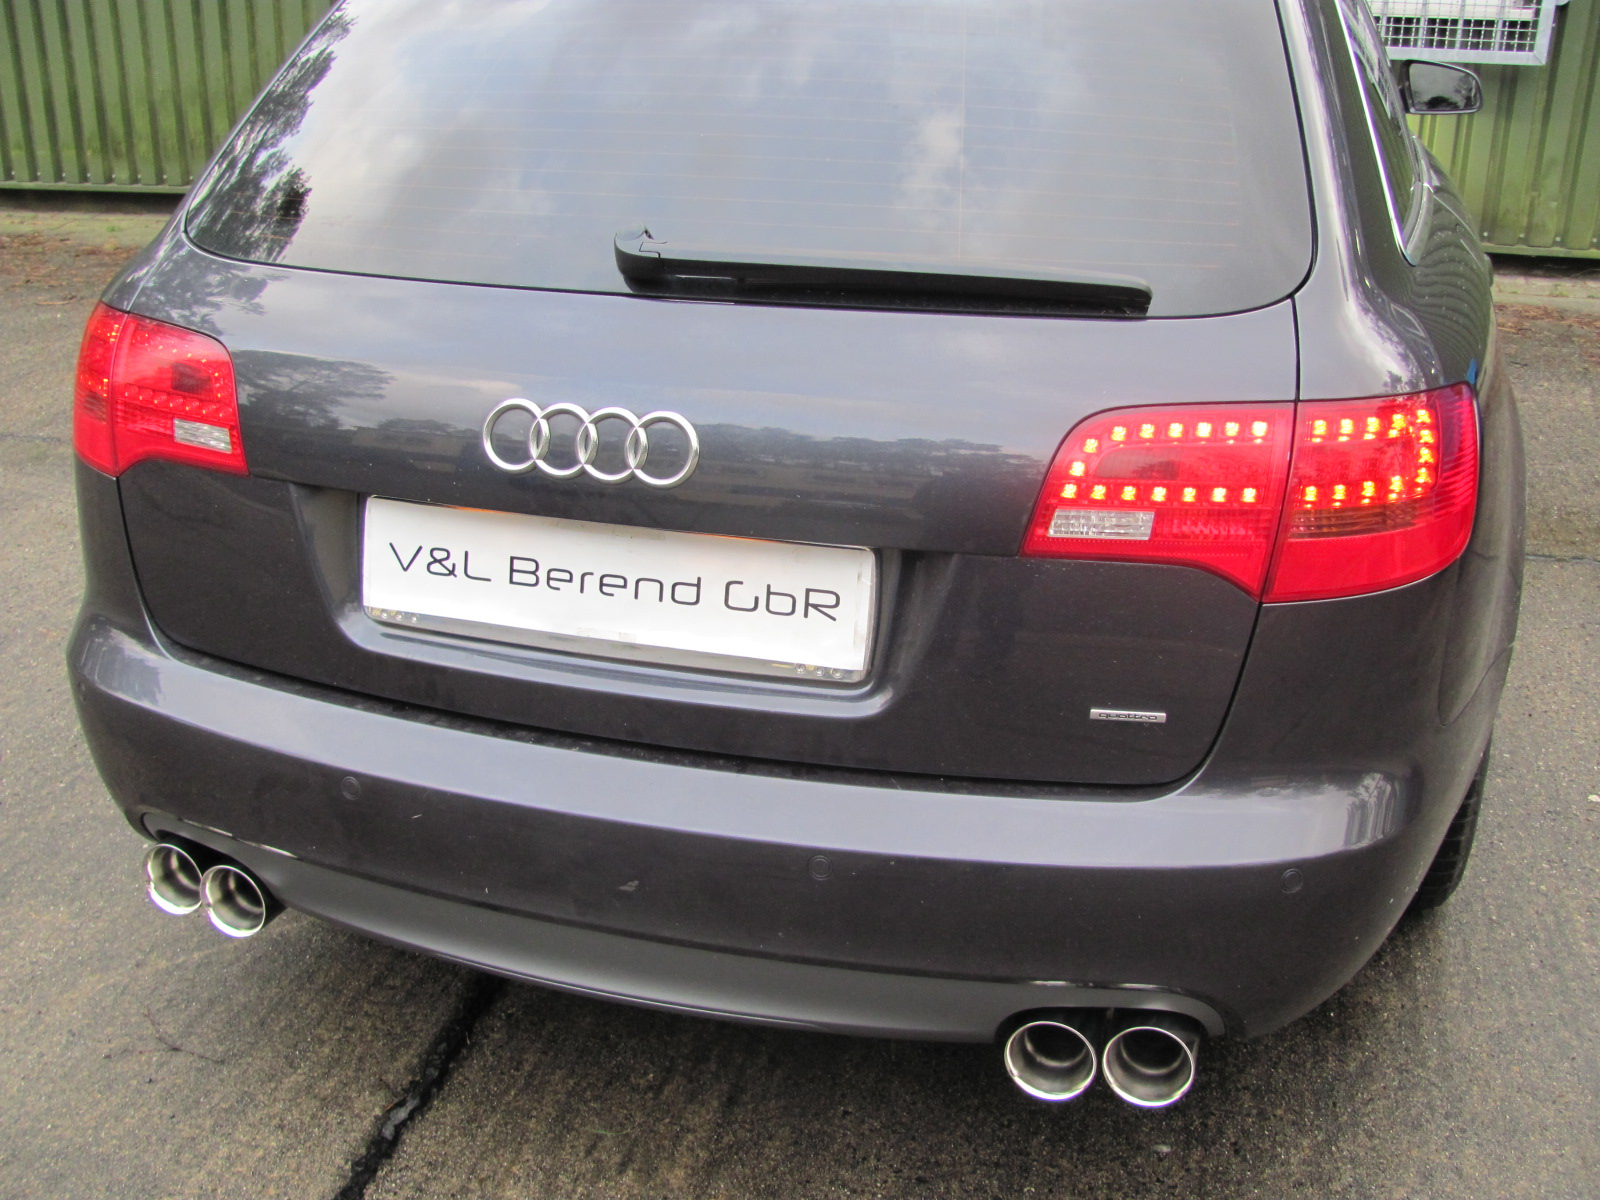 audi a6 4f2 avant c6 3 0 tdi quattro duplex exhaust end pipe performance system ebay. Black Bedroom Furniture Sets. Home Design Ideas